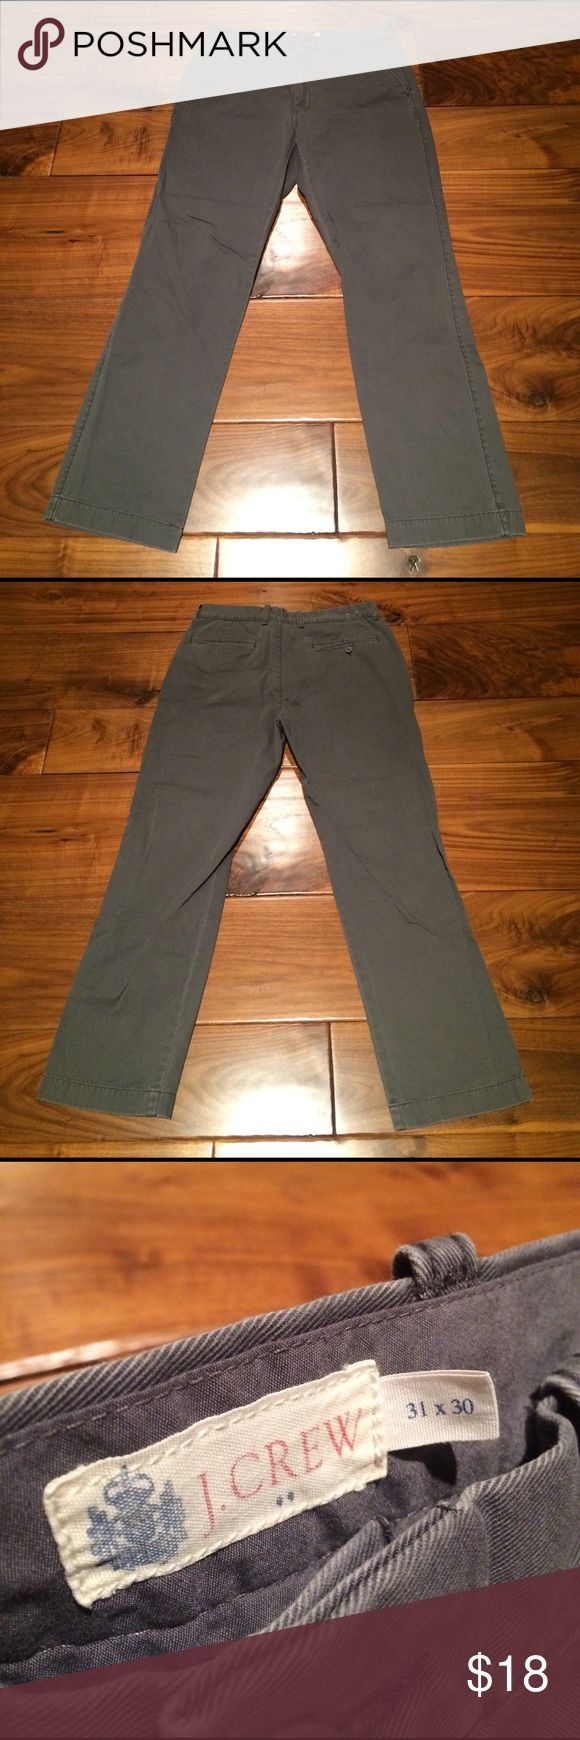 J. Crew Men's Chino Size 31/30 (inseam currently measures 29), 100% cotton J. Crew Pants Chinos & Khakis